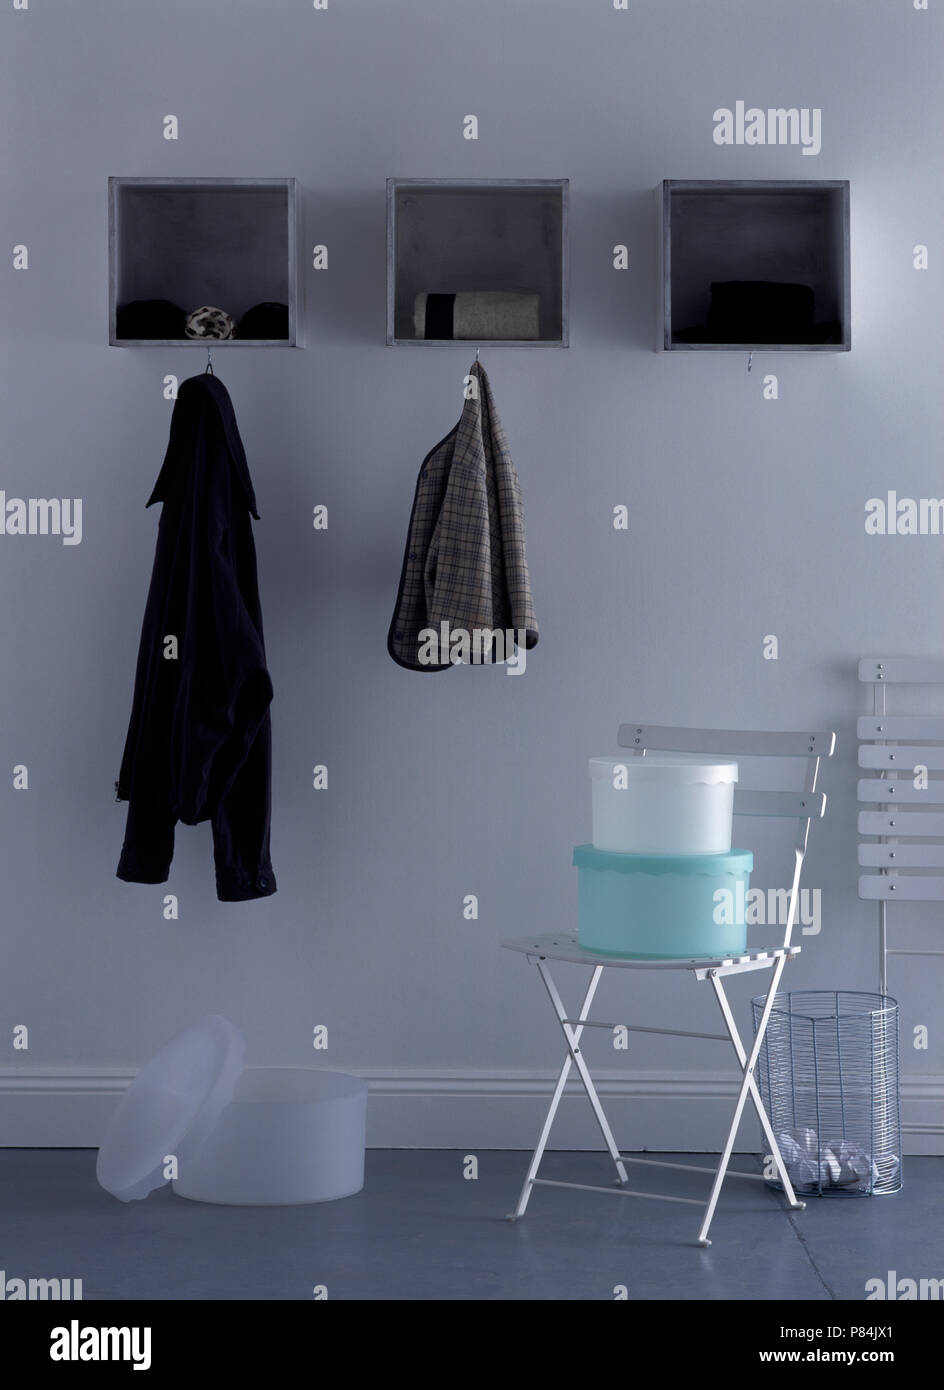 Peachy Jackets Hanging From Small Alcove Shelves Above Plastic Cjindustries Chair Design For Home Cjindustriesco